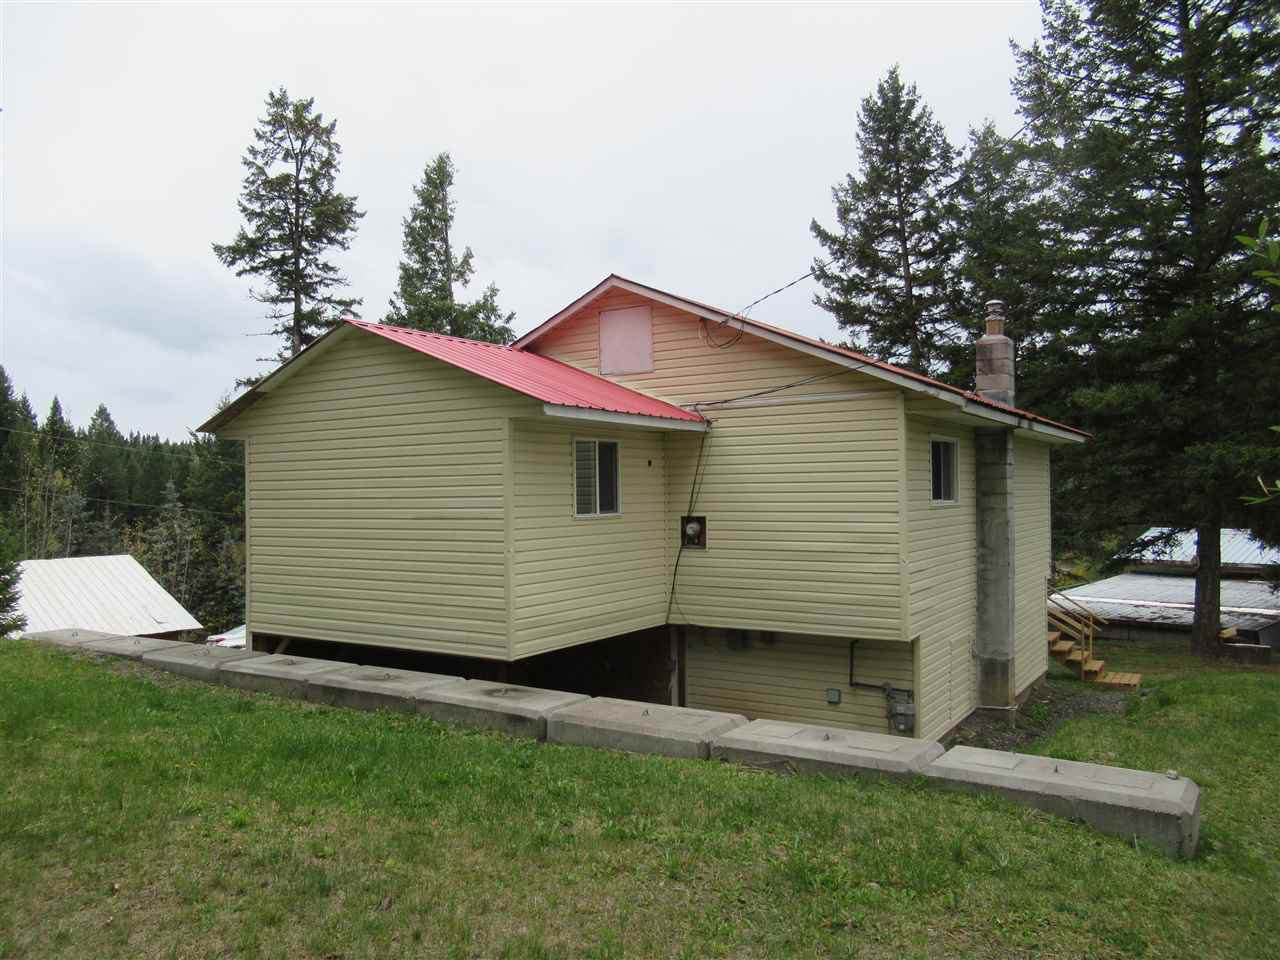 Photo 20: Photos: 3974 SCHARF Road in Williams Lake: Williams Lake - Rural North House for sale (Williams Lake (Zone 27))  : MLS®# R2409567